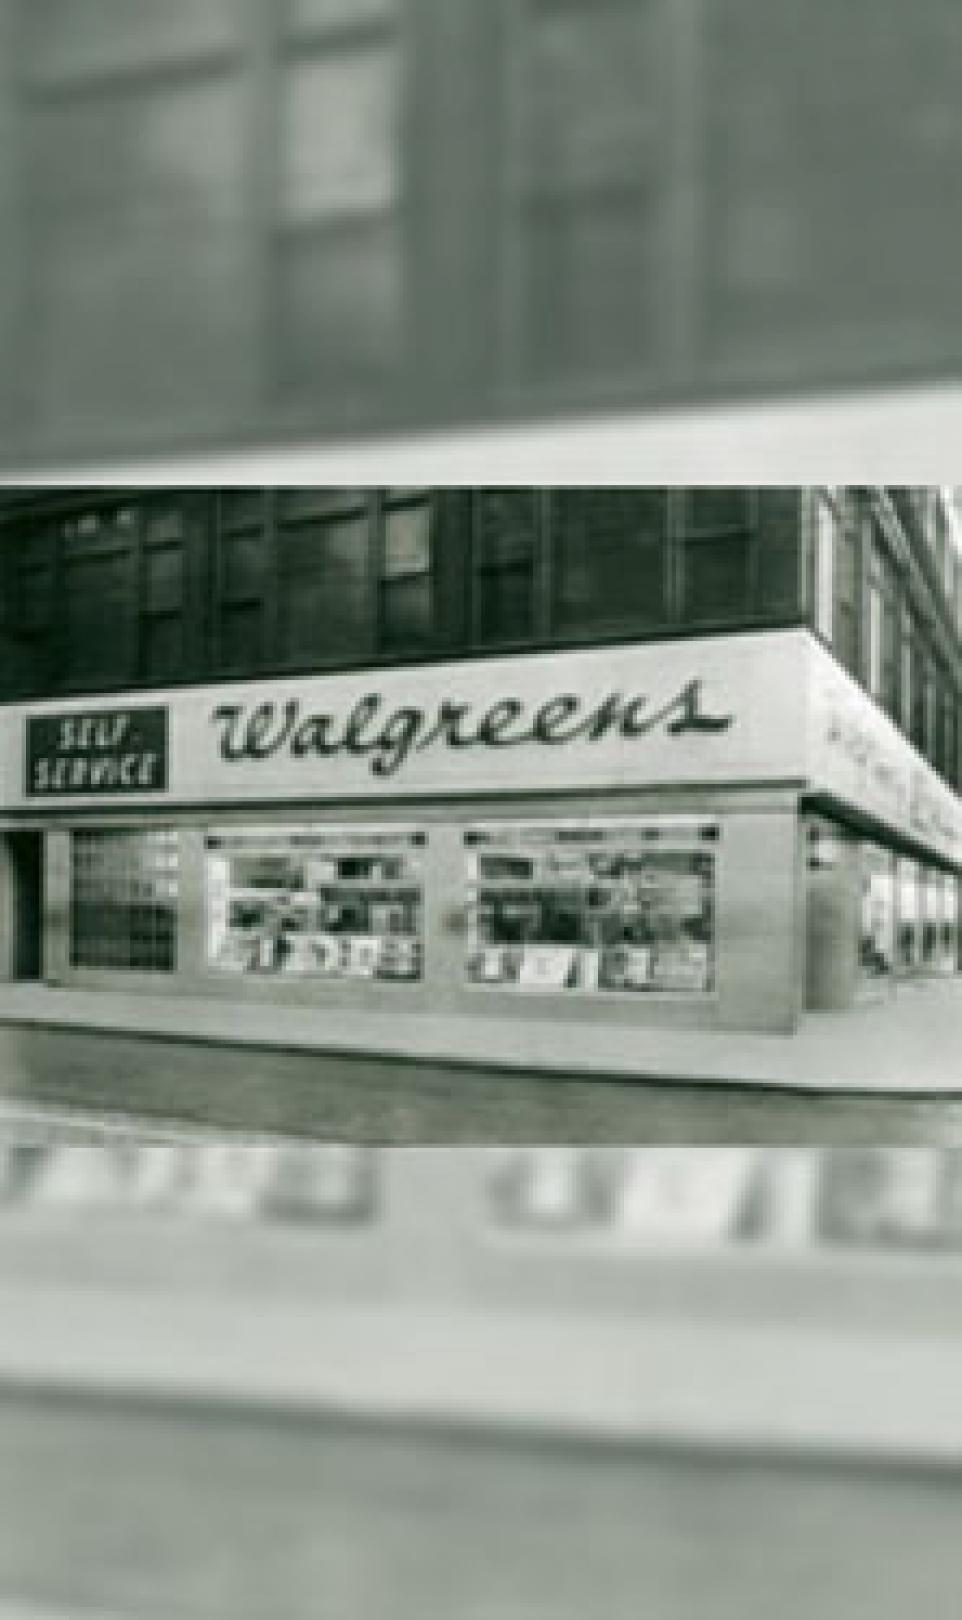 Storefront black and white photograph of a Walgreens self-service store